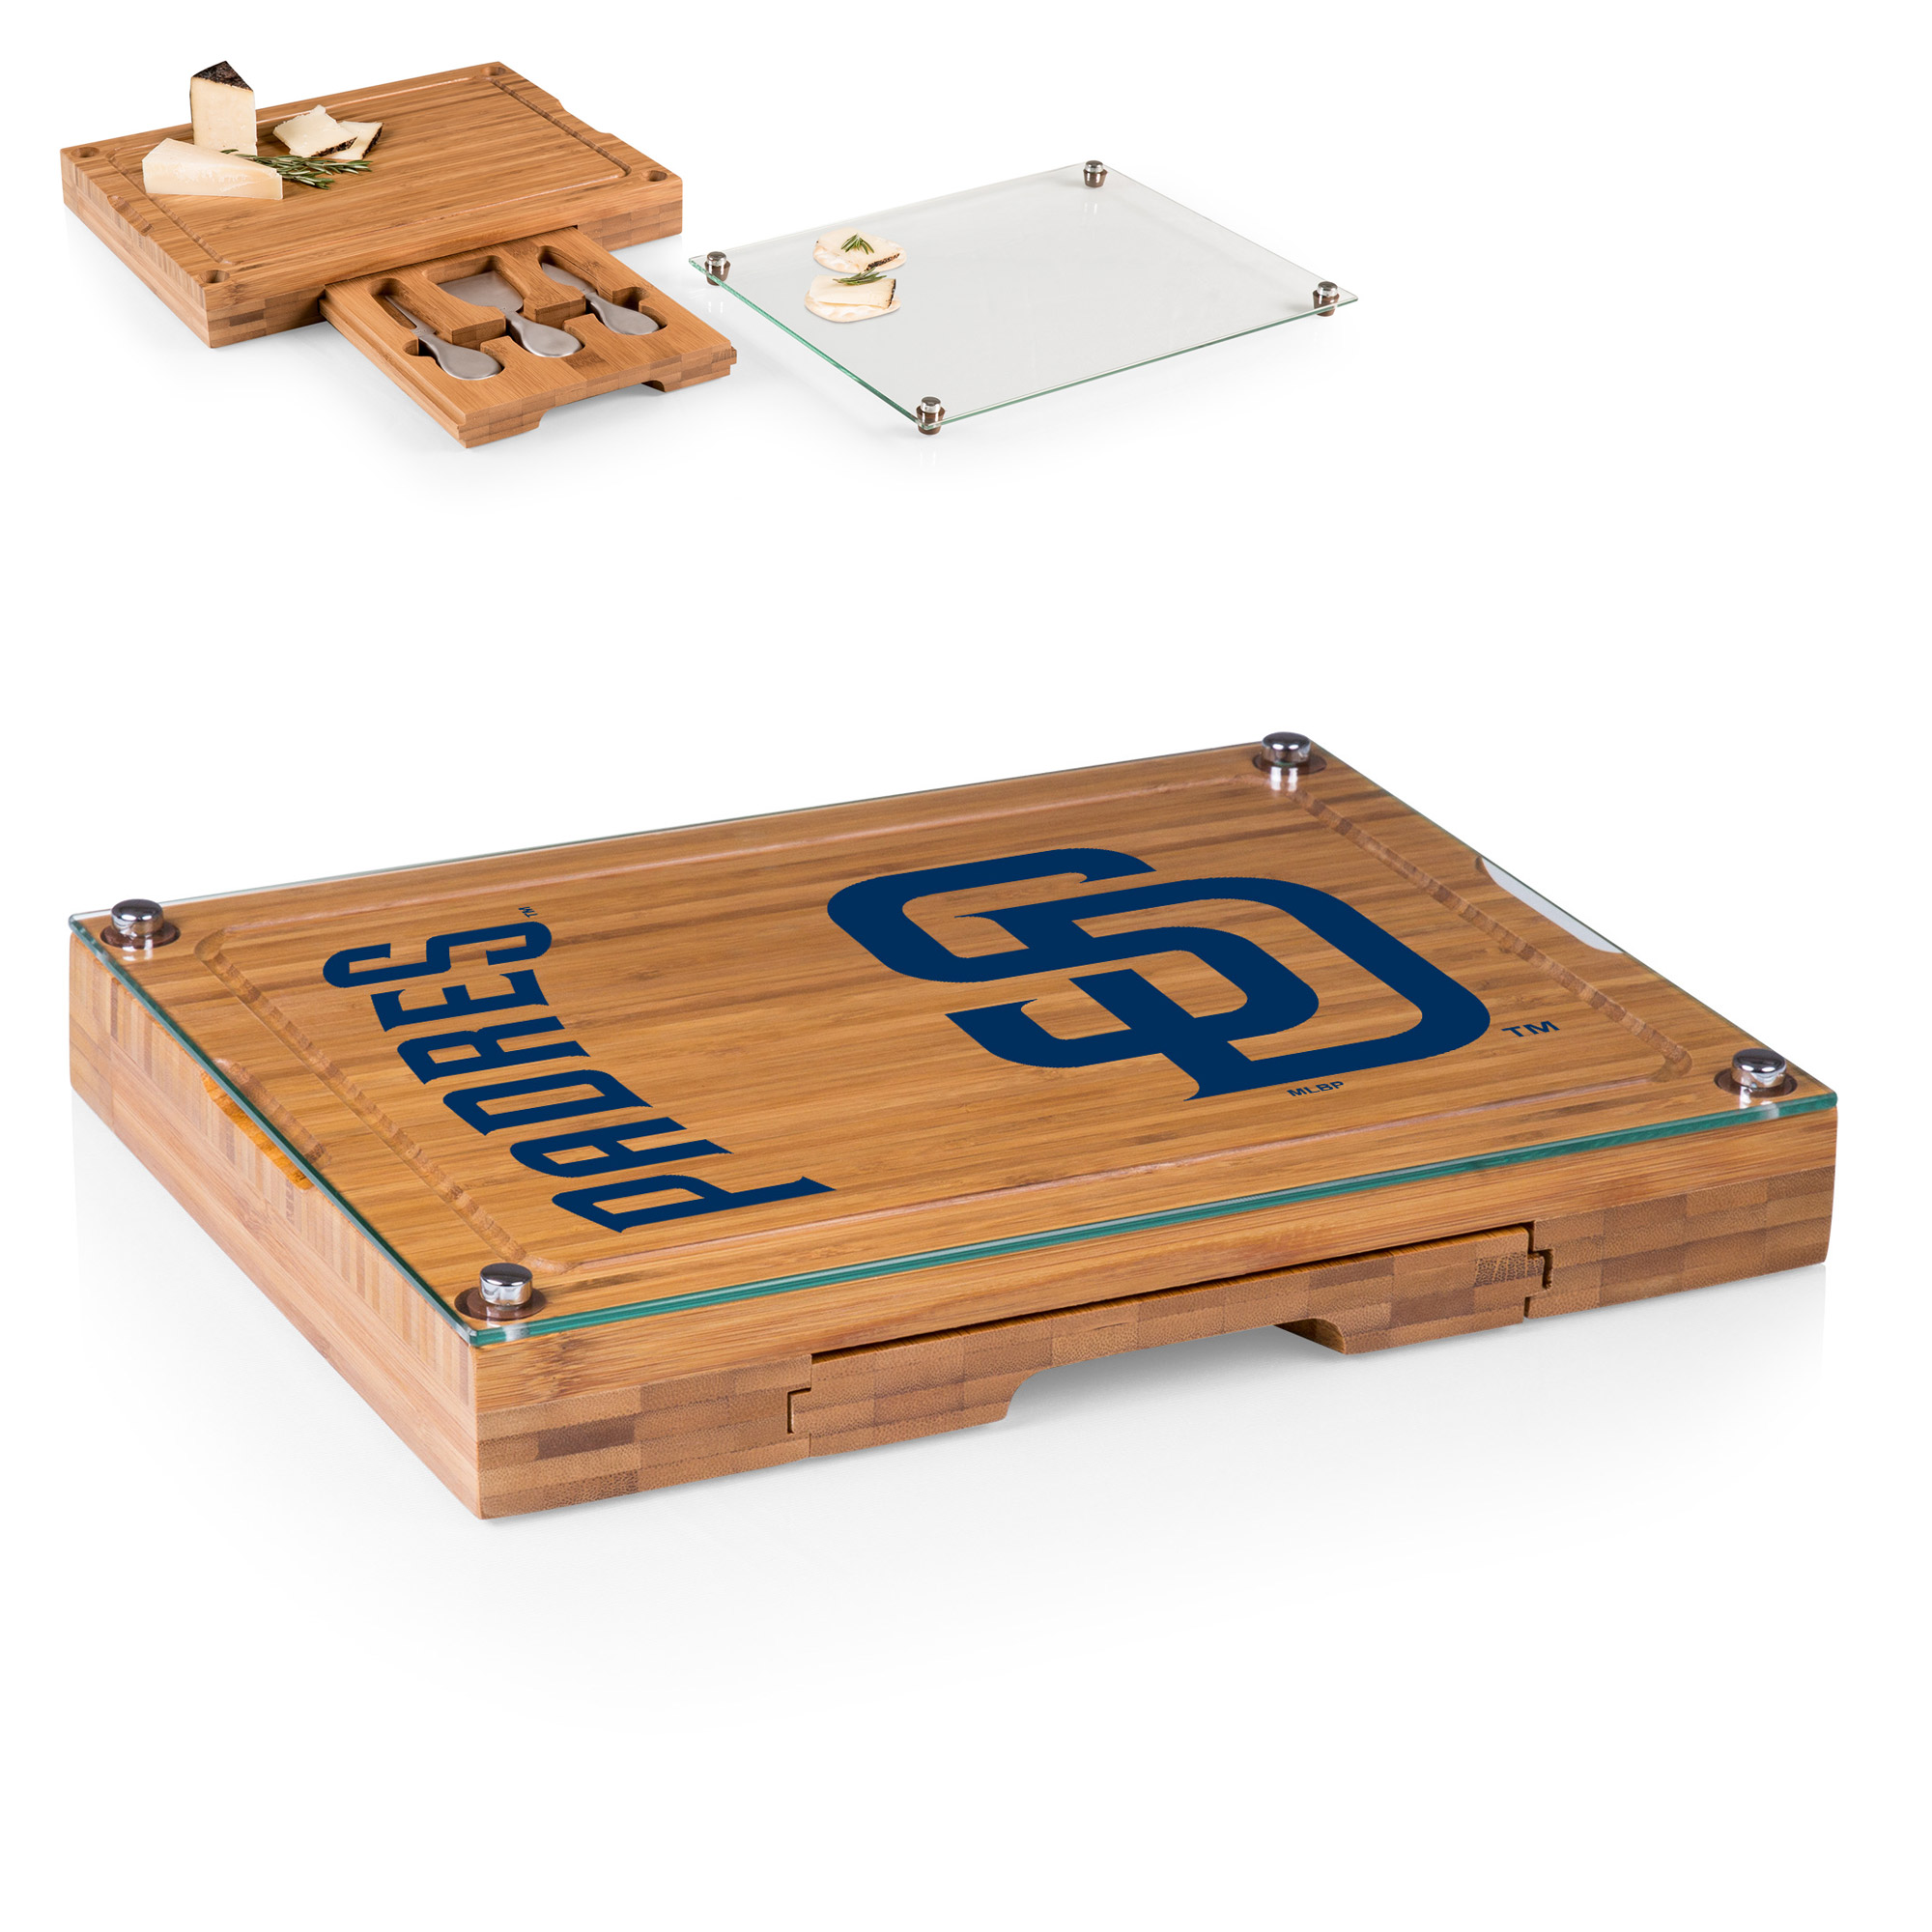 San Diego Padres Concerto Cheese Board with Serving Stage and Tools - No Size